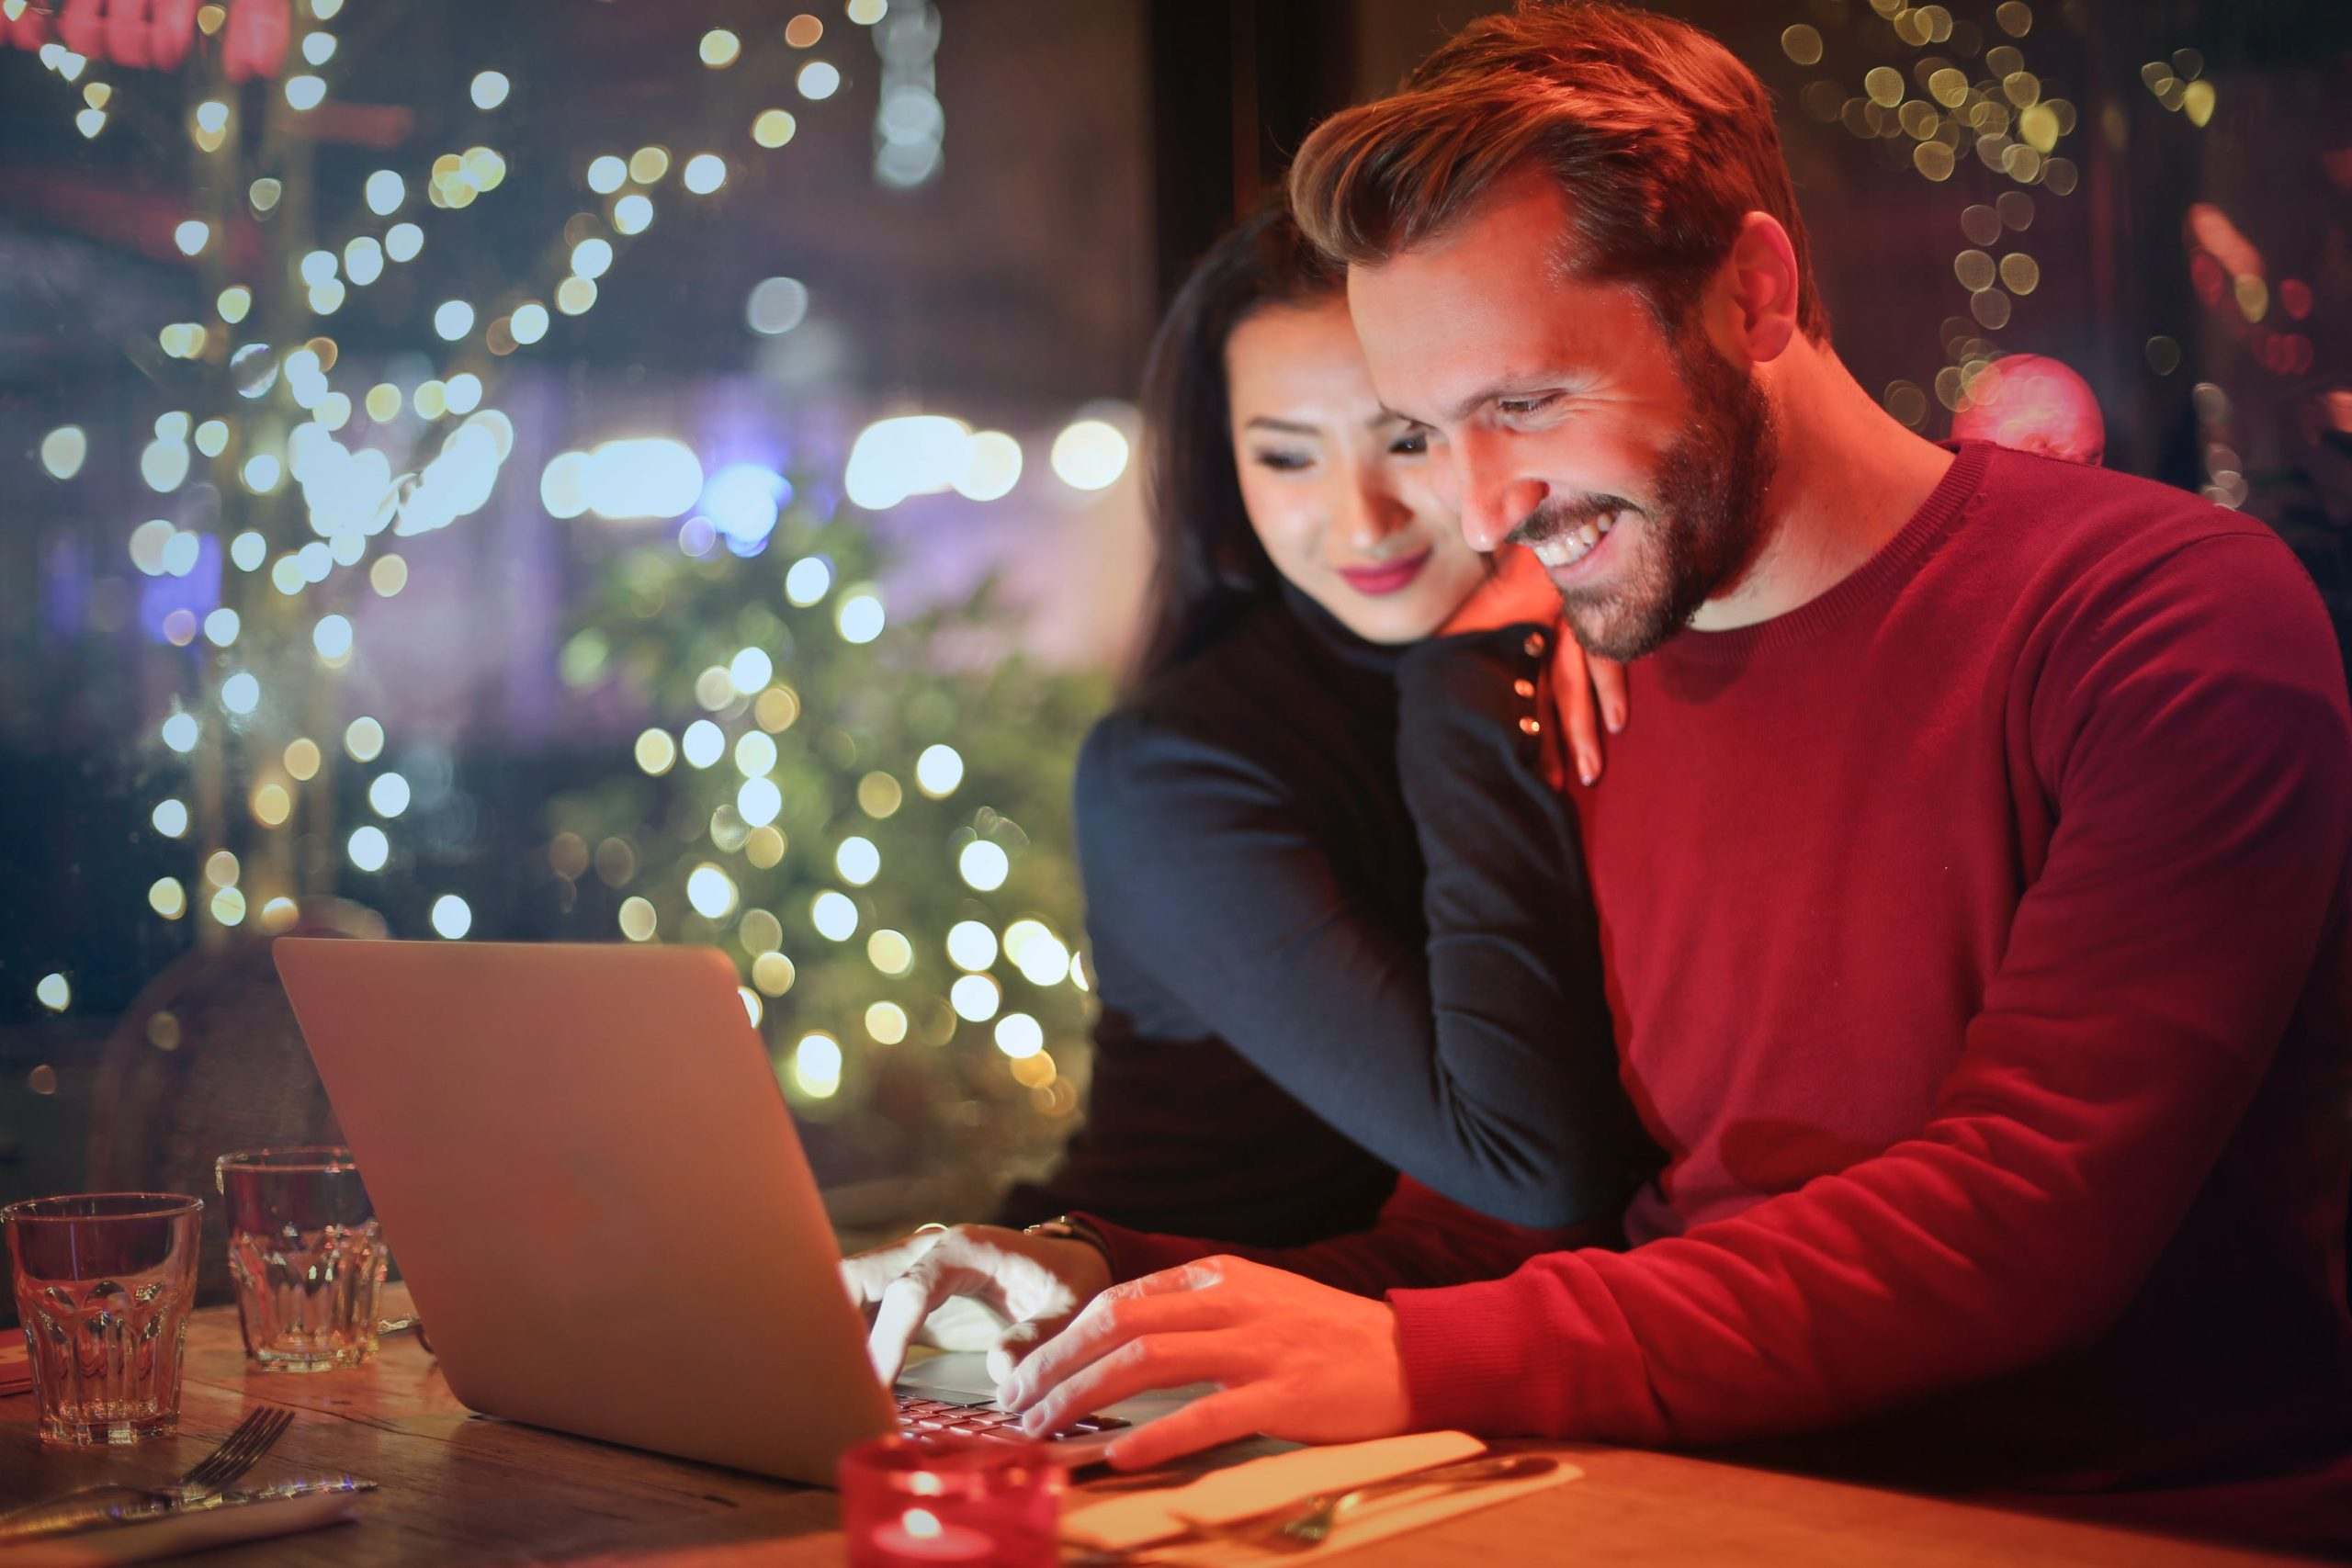 couple-holiday-excited-engage audience